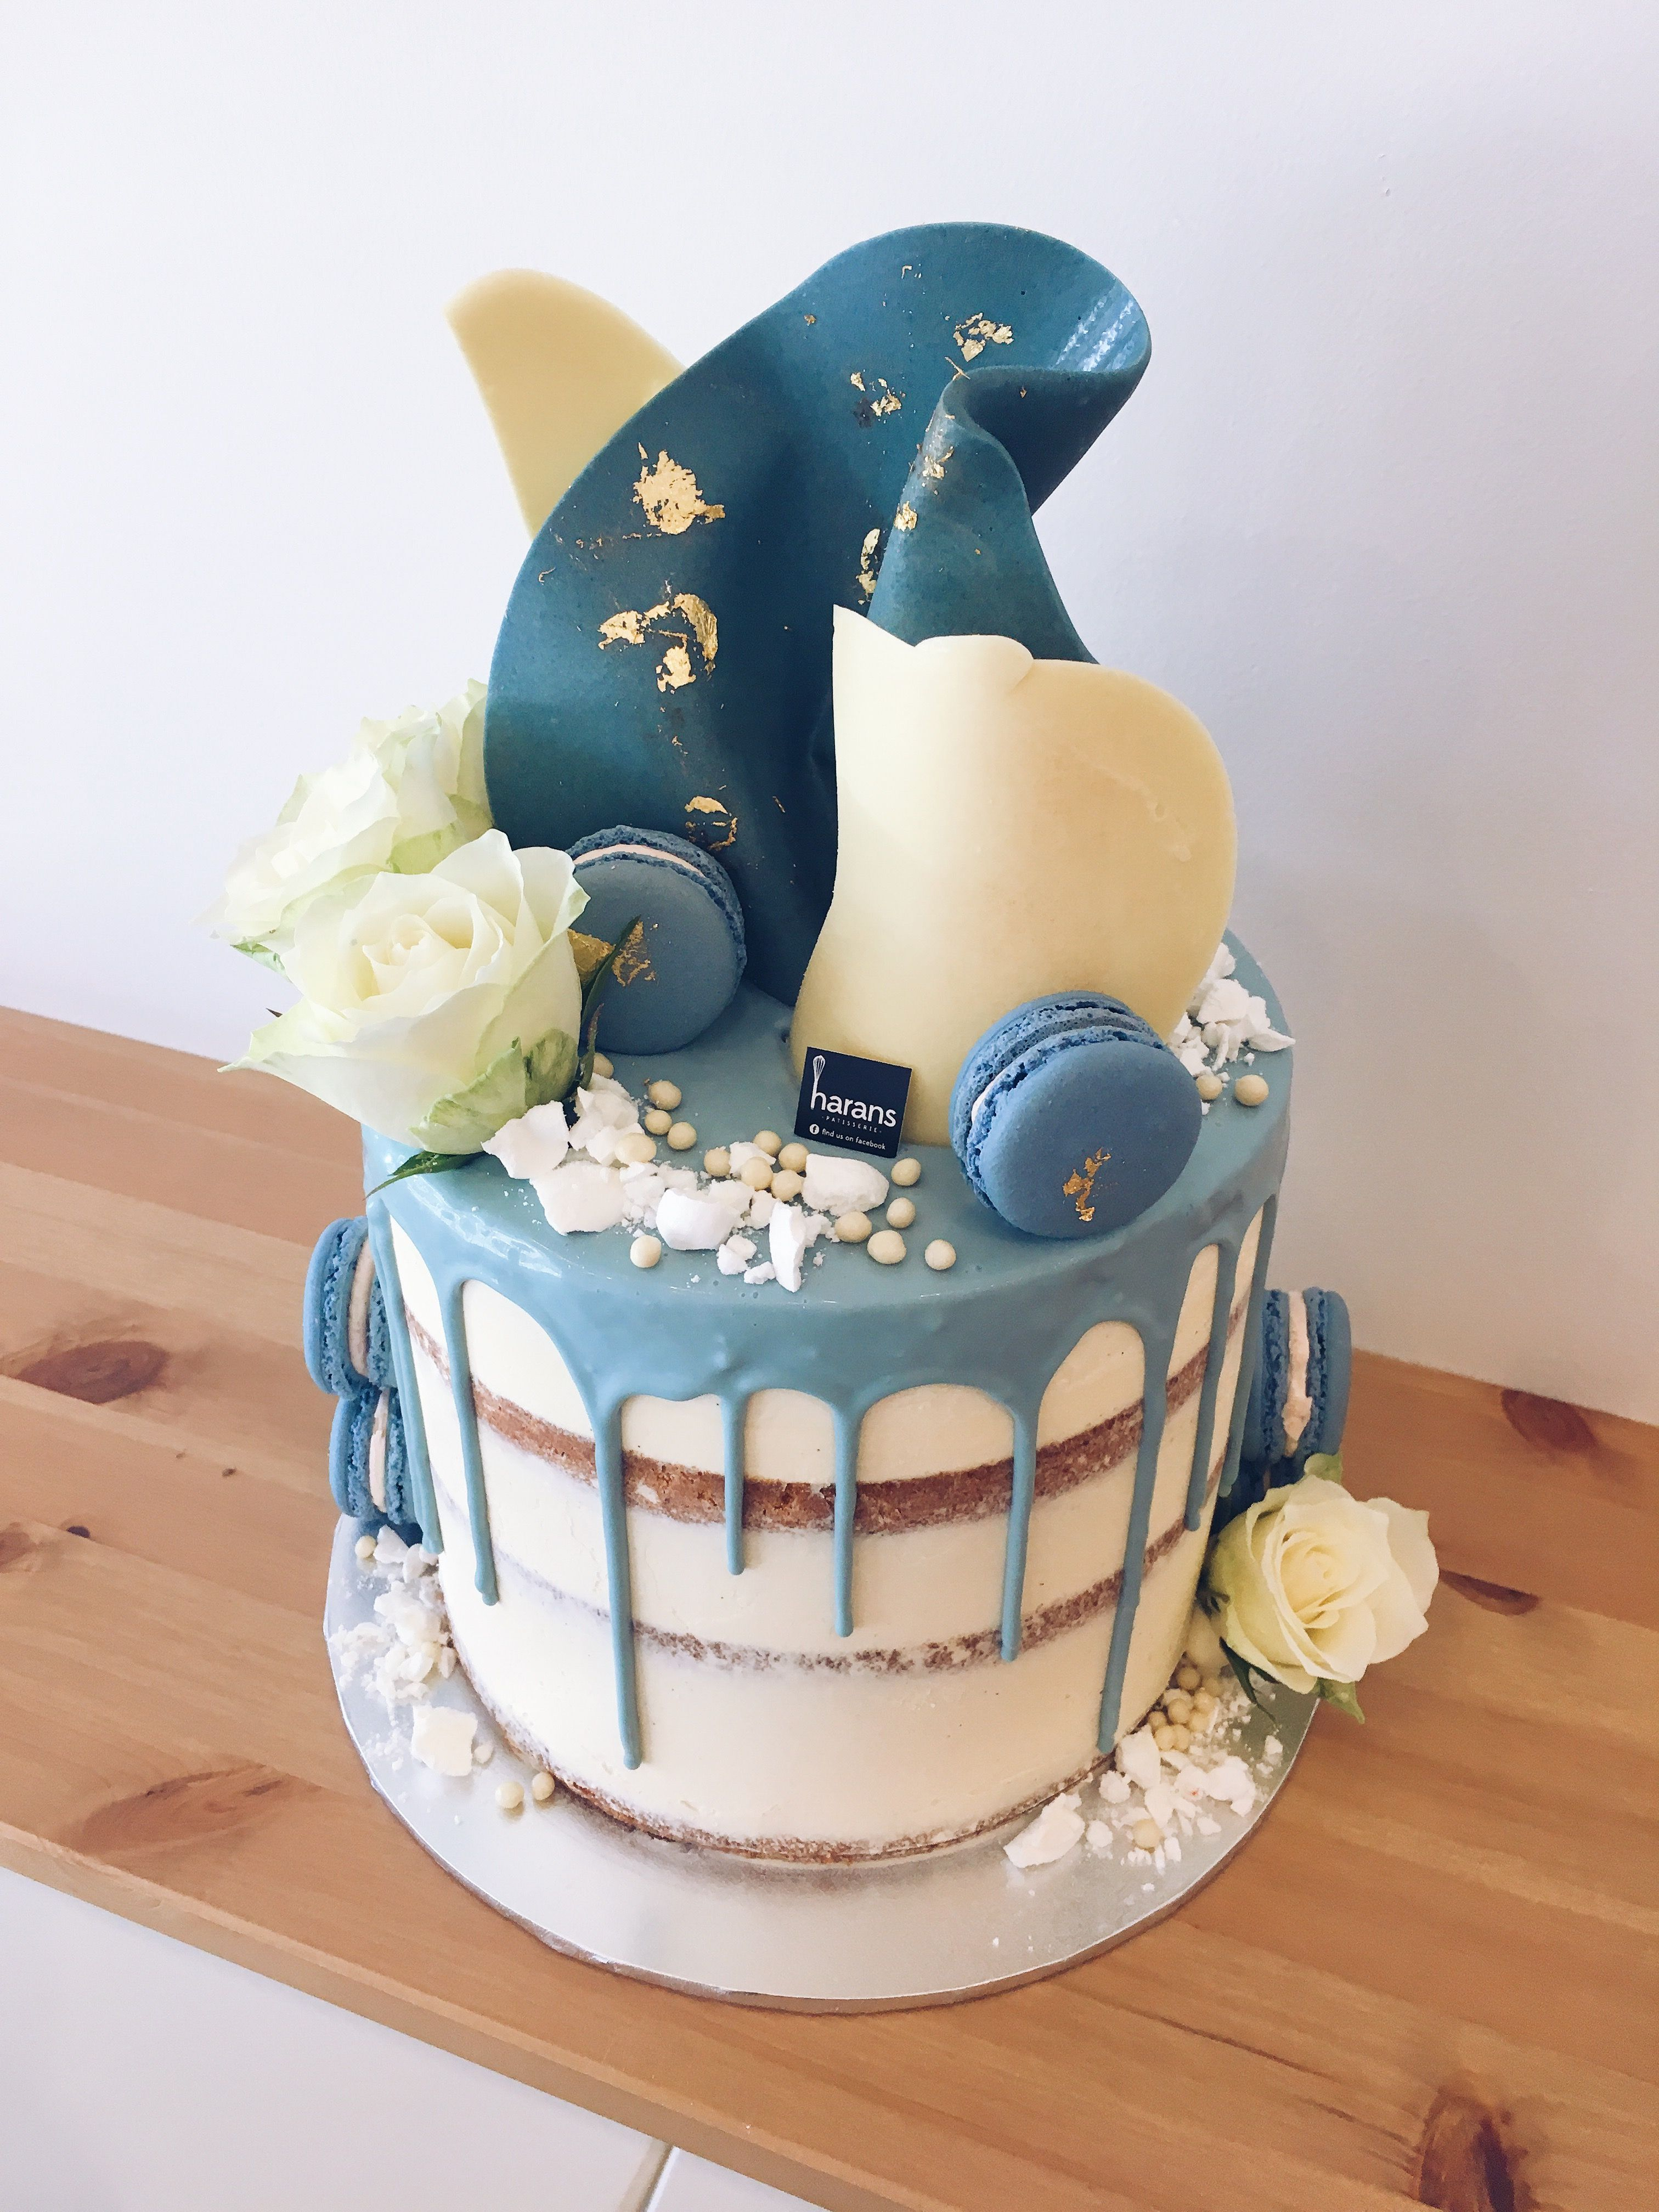 Baby Shower Cake In White Baked Buttercream With Blue Drip